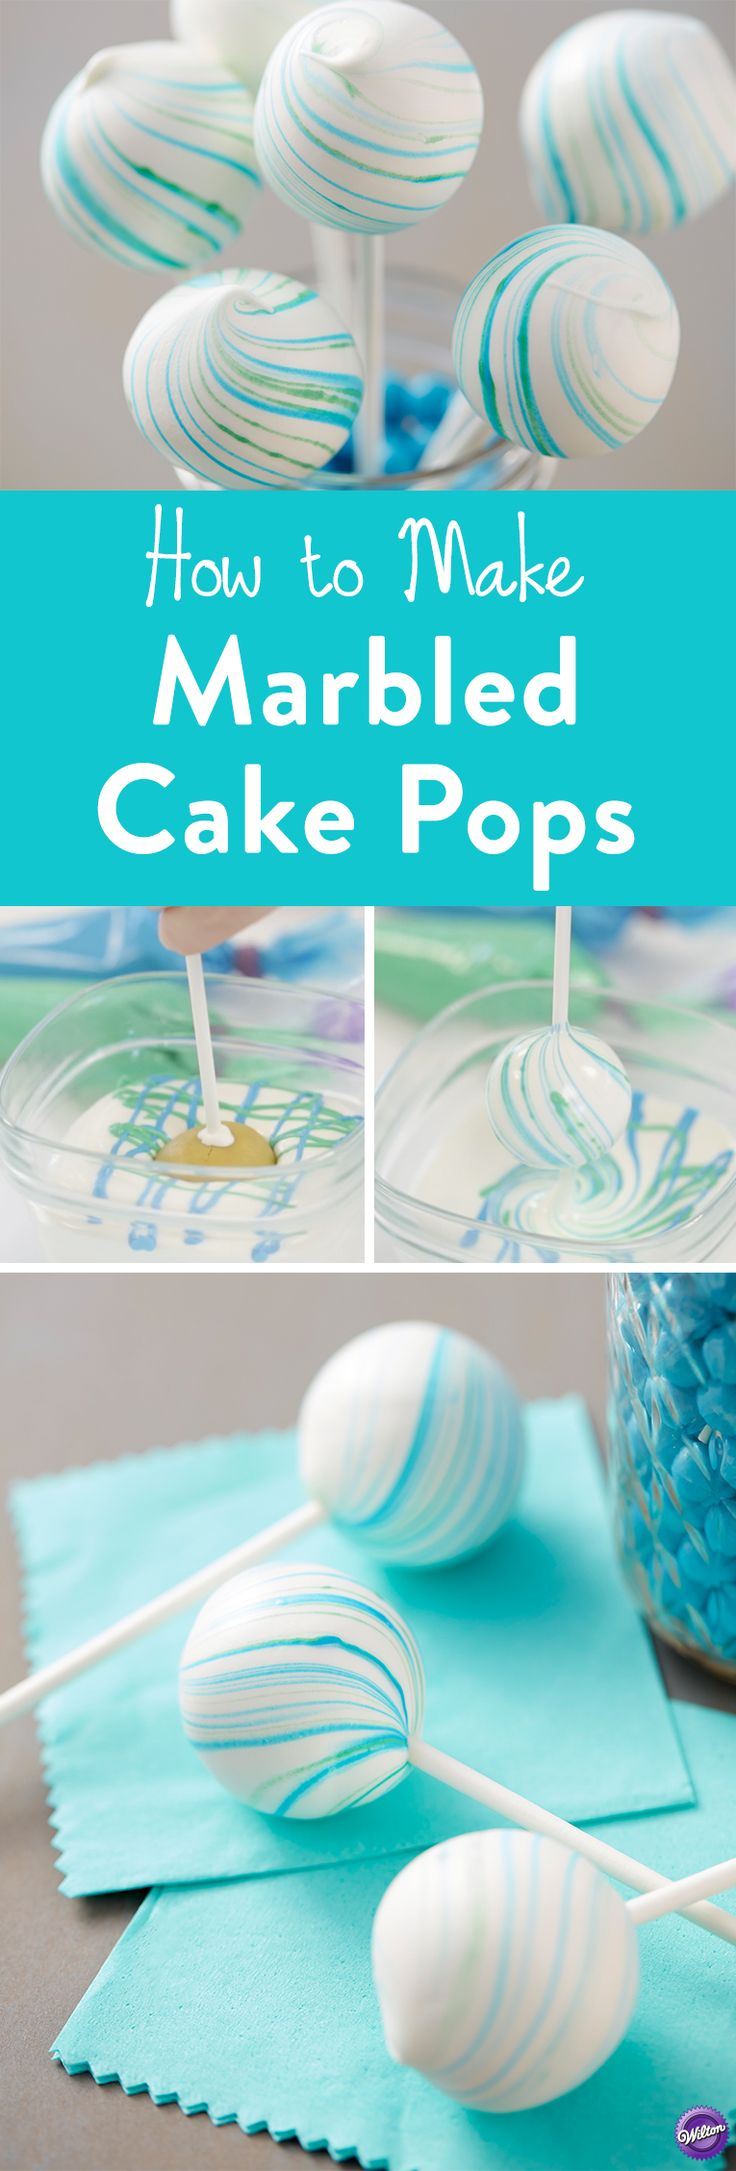 How to Make Marbled Cake Pops - Create a marbled look on your cake pops with this Marbleized Cake Pops project. Fun for baby showers and weddings, these cake pops are deceivingly easy to make and look so elegant when completed. These cake pops feature blue and green marbling, but you could use any colors you'd like to best suit your occasion.